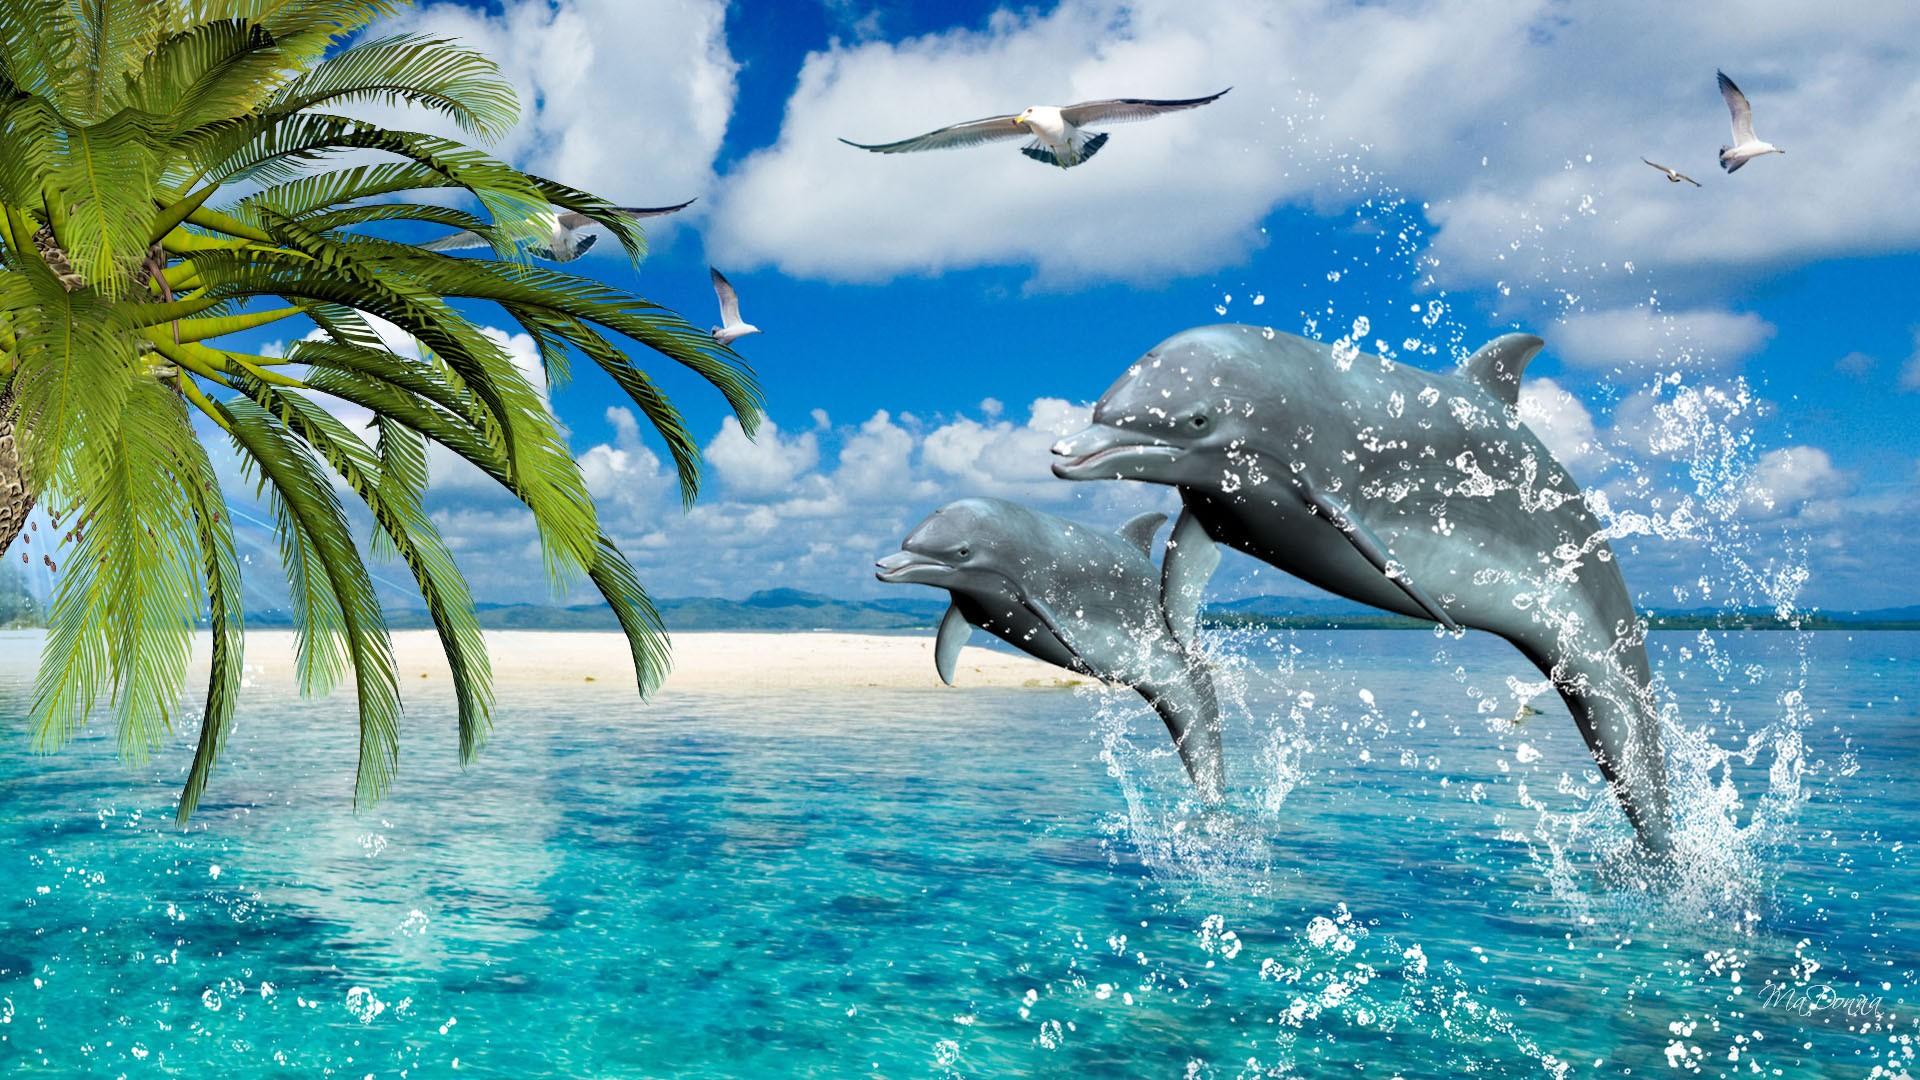 Dolphins wallpapers high definition wallpapers cool nature - Dolphin Wallpapers